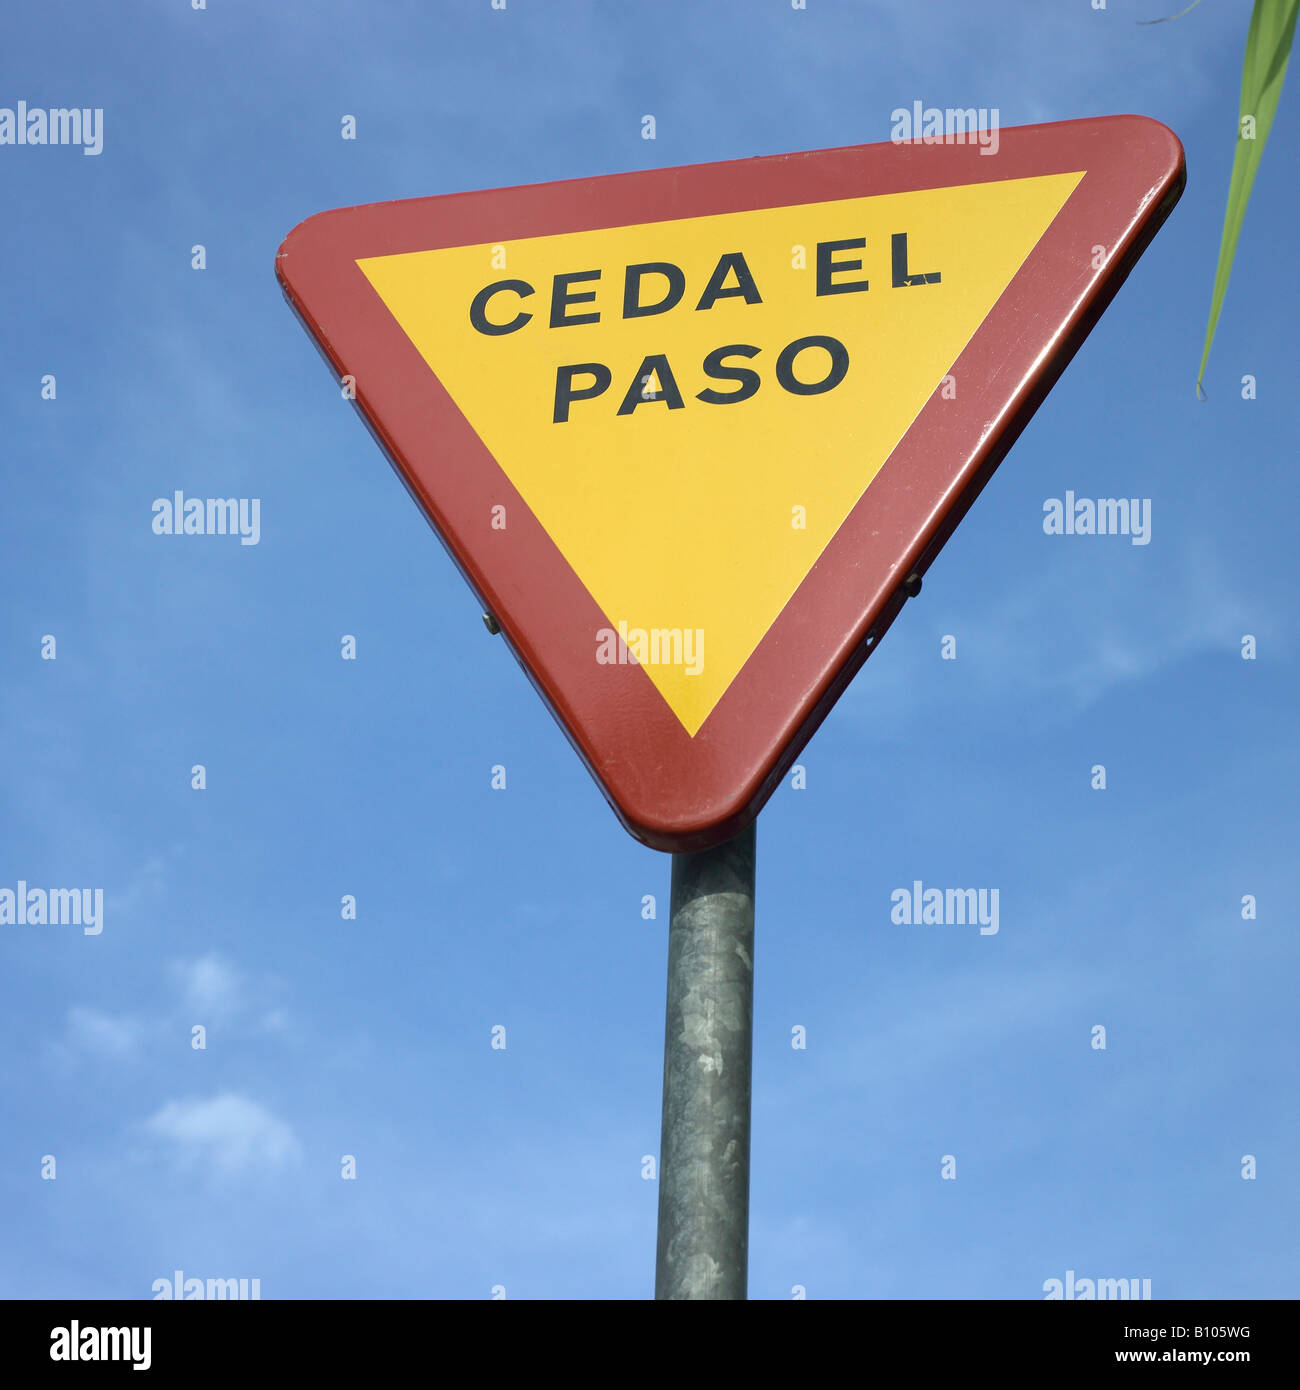 yield sign in spanish Stock Photo